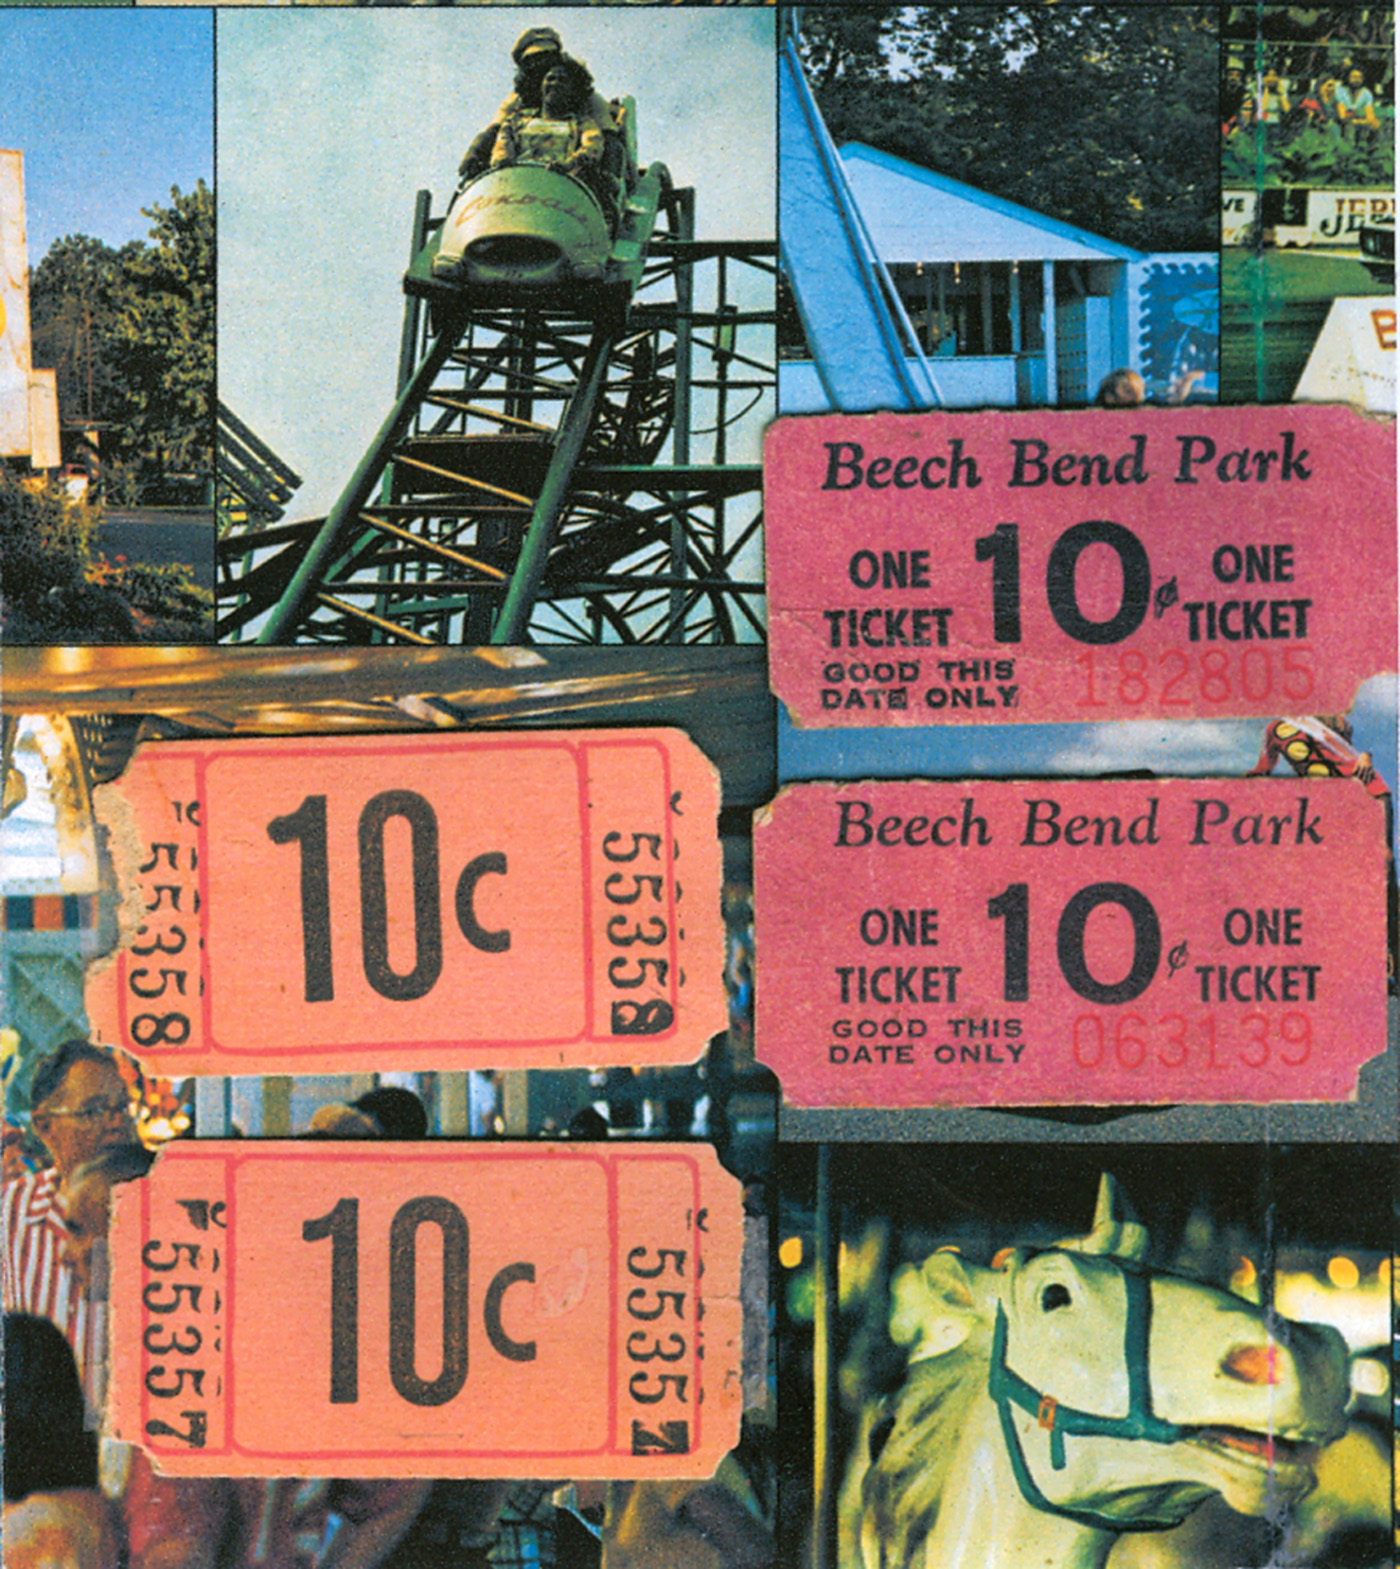 Beech-Bend-park-tickets-flyer-Farnsworth-photo